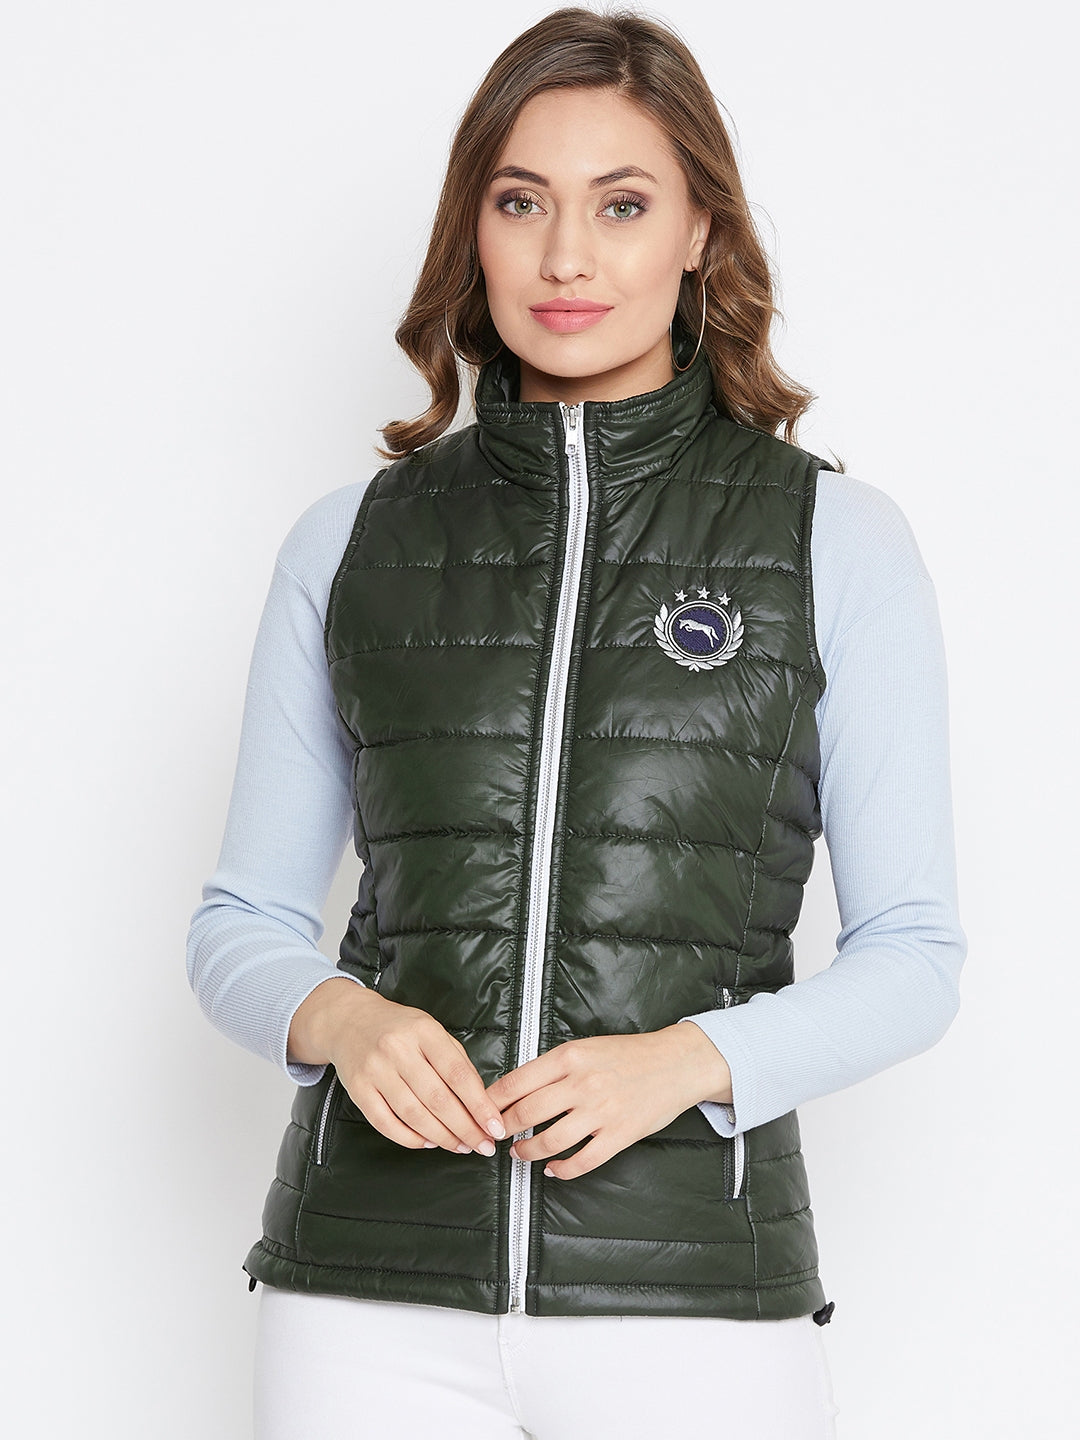 JUMP USA Women Green Solid Padded Jacket - JUMP USA